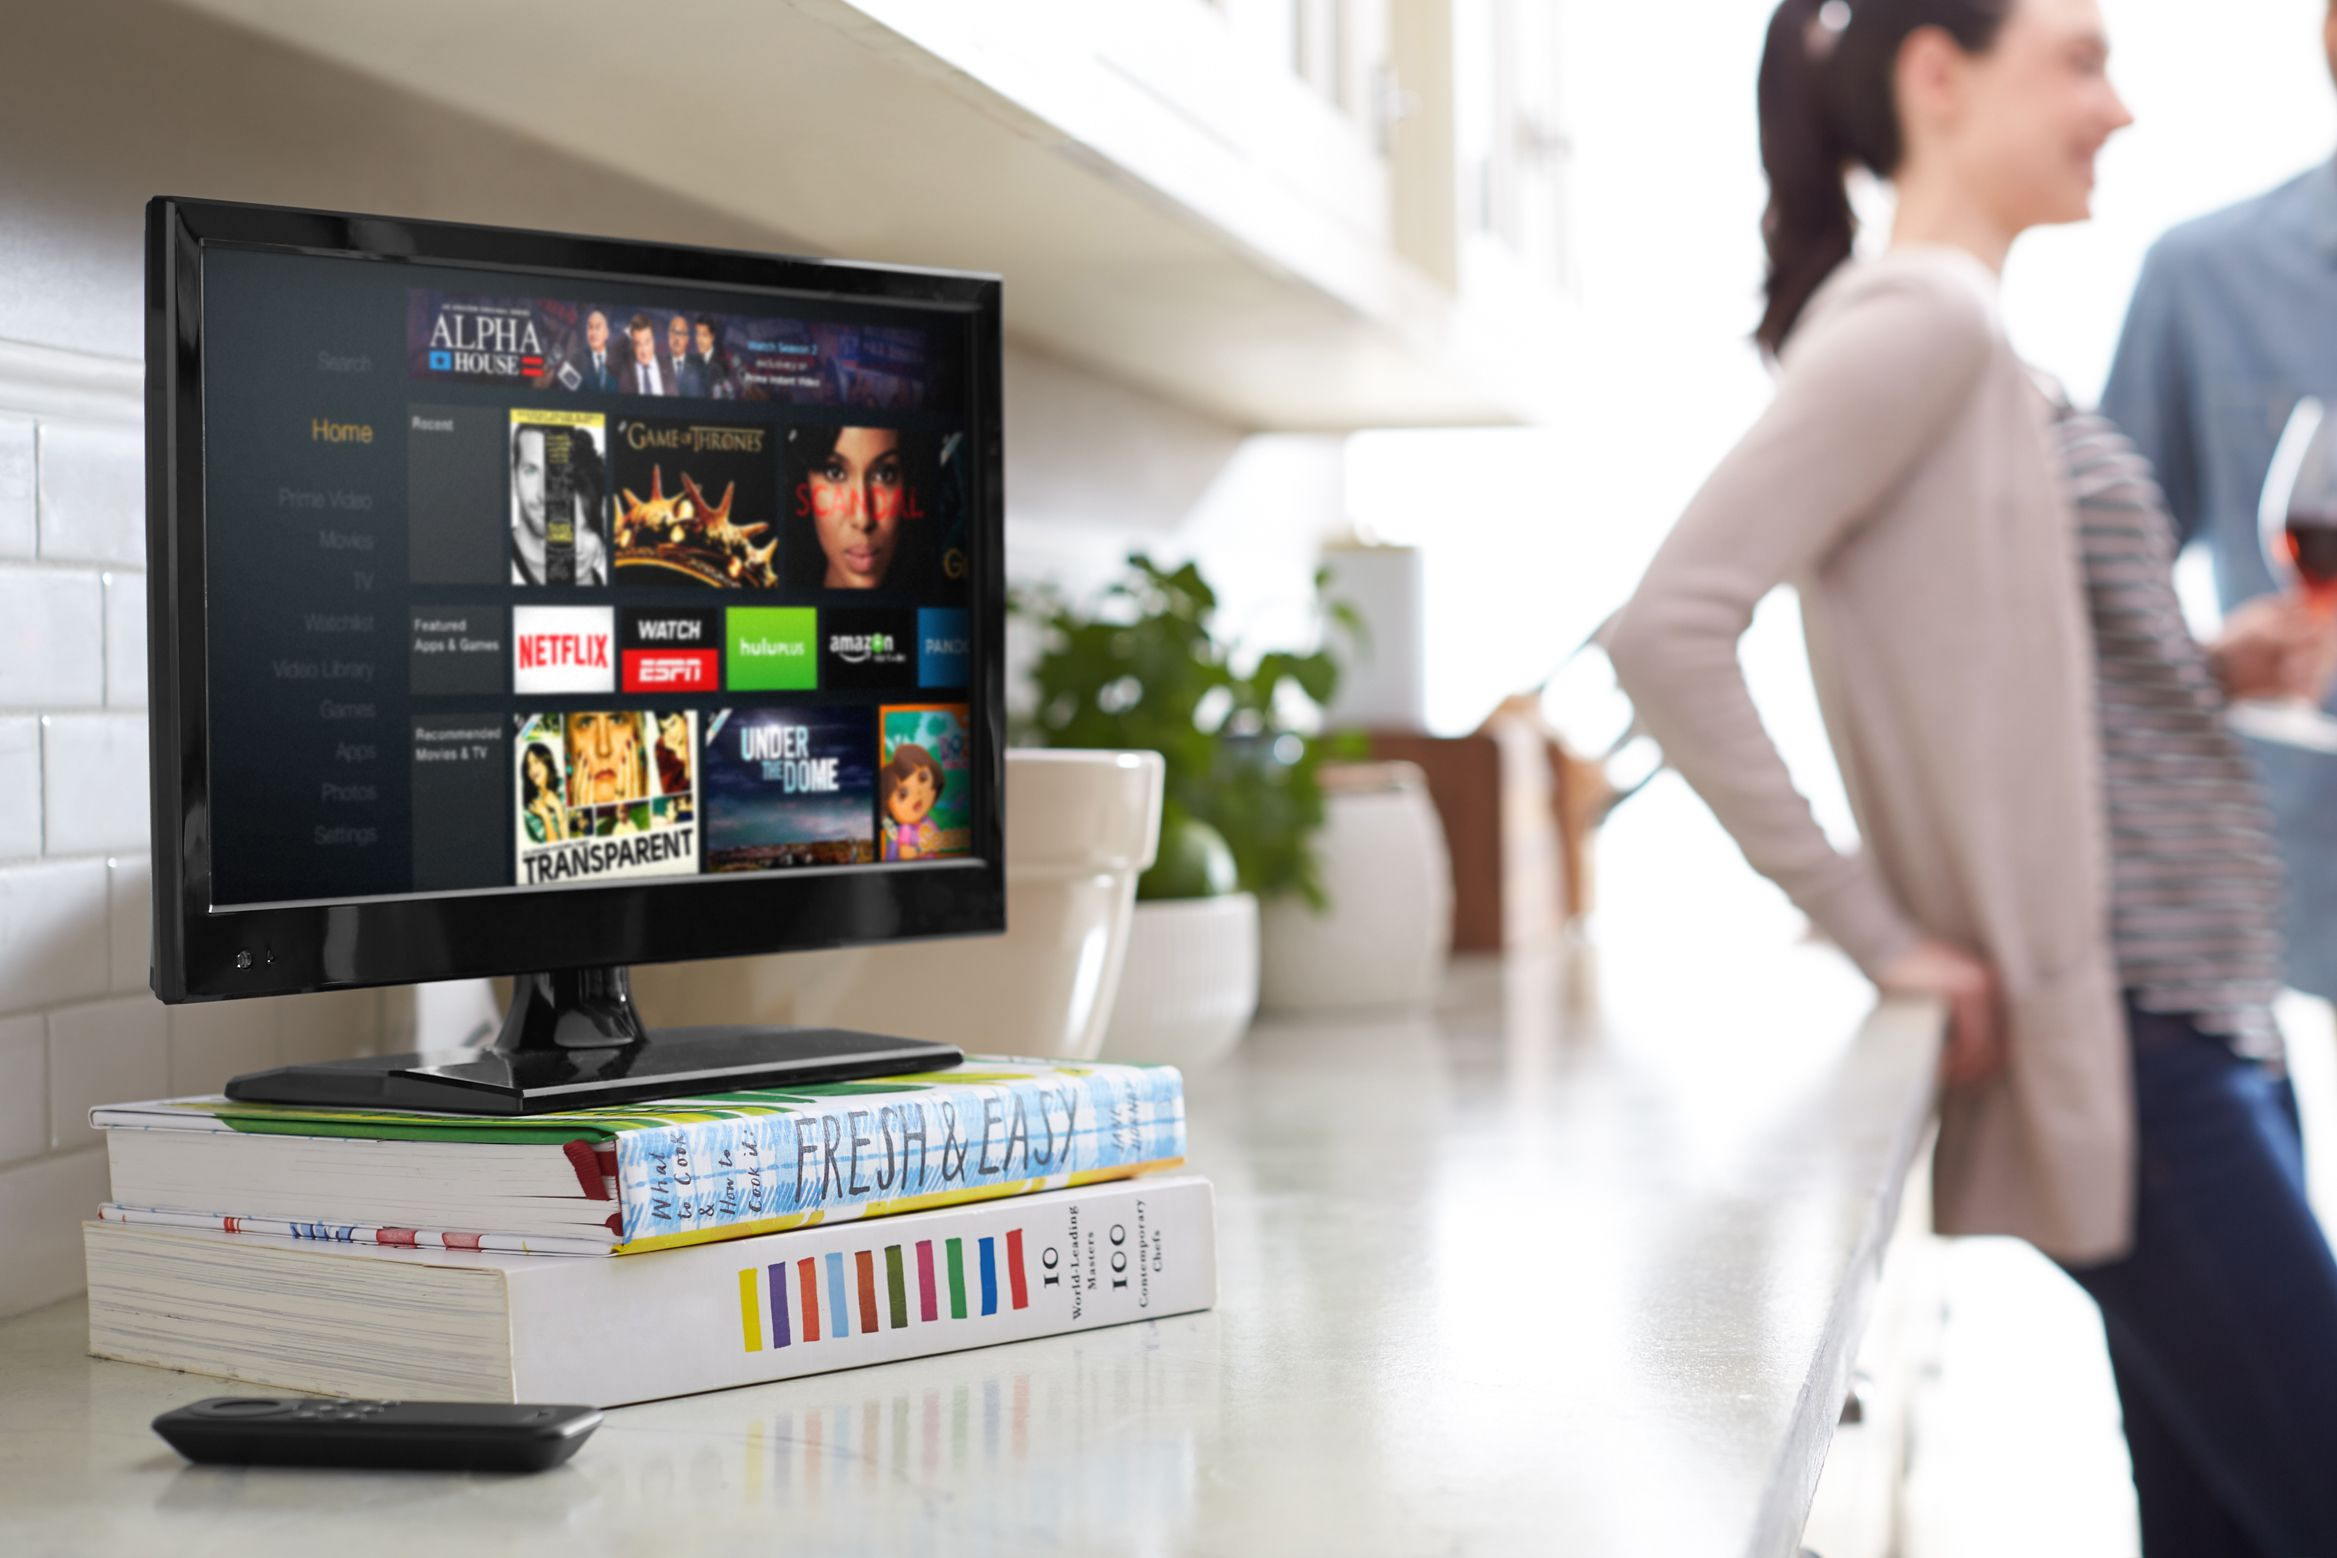 How To Set Up And Use Amazon Fire Tv The Cable Line Ready Tvs Or Through An Adapter Box Top